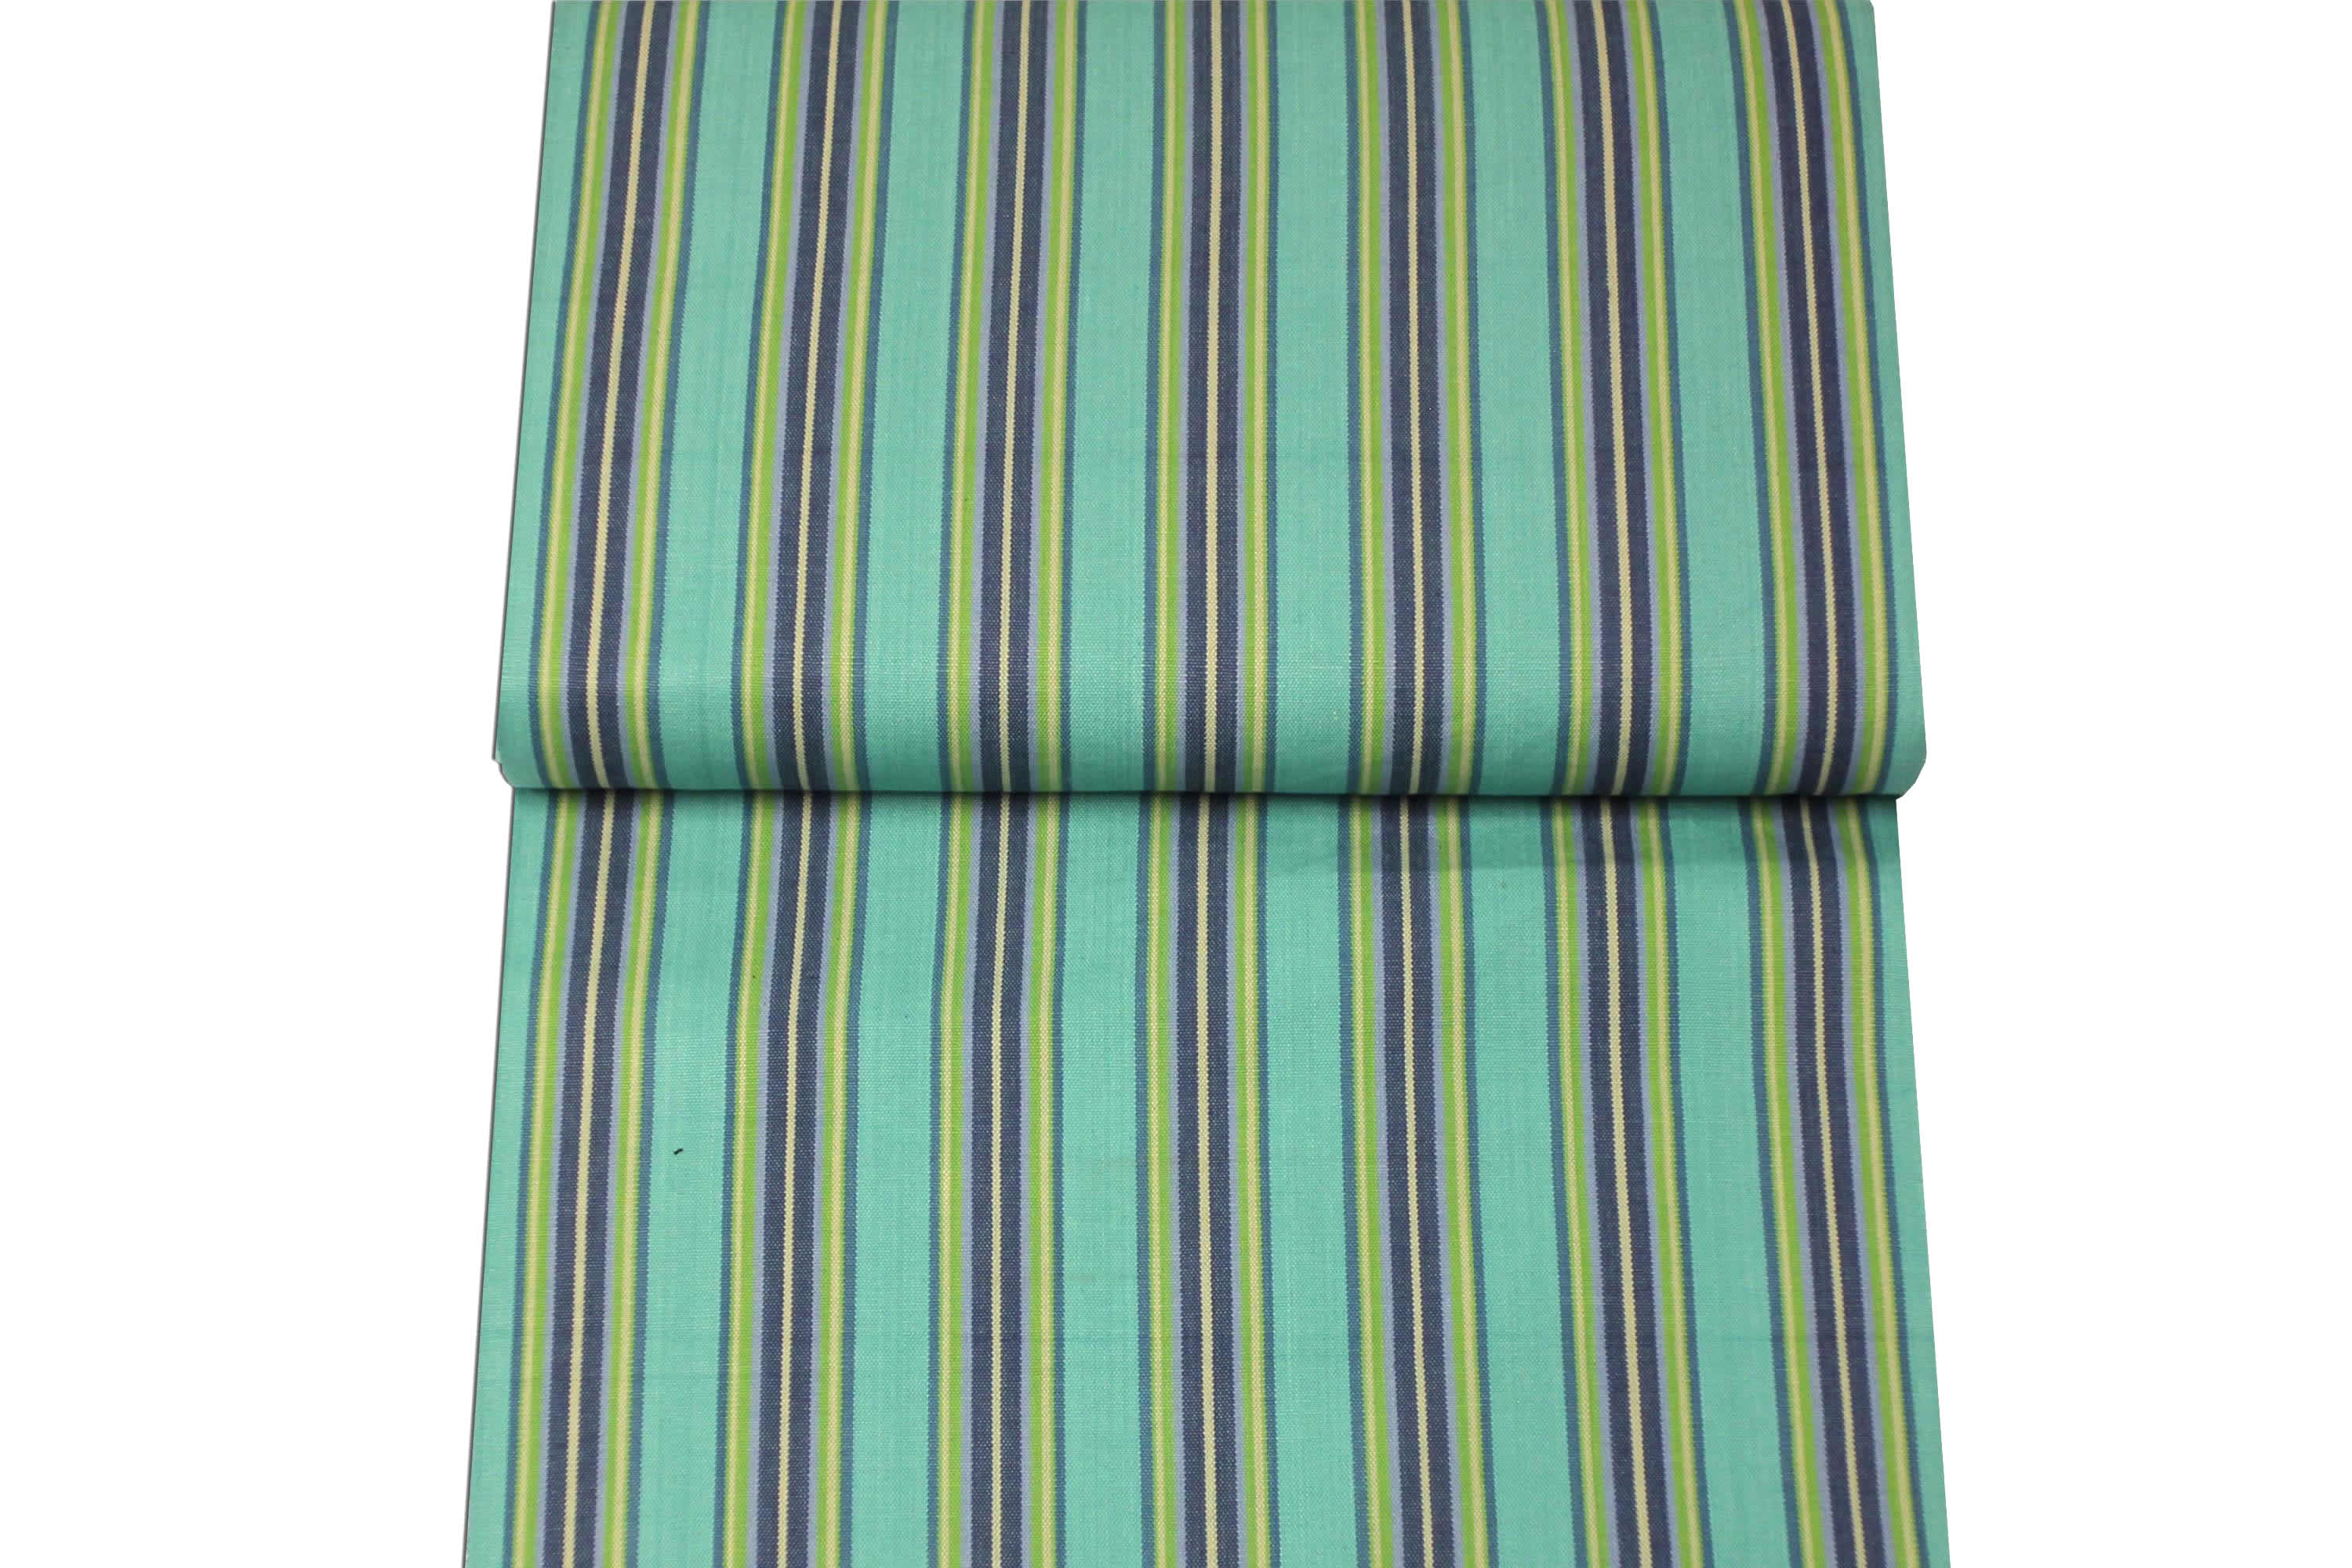 Replacement Directors Chair Covers -Turquoise, blue, green, cream stripes